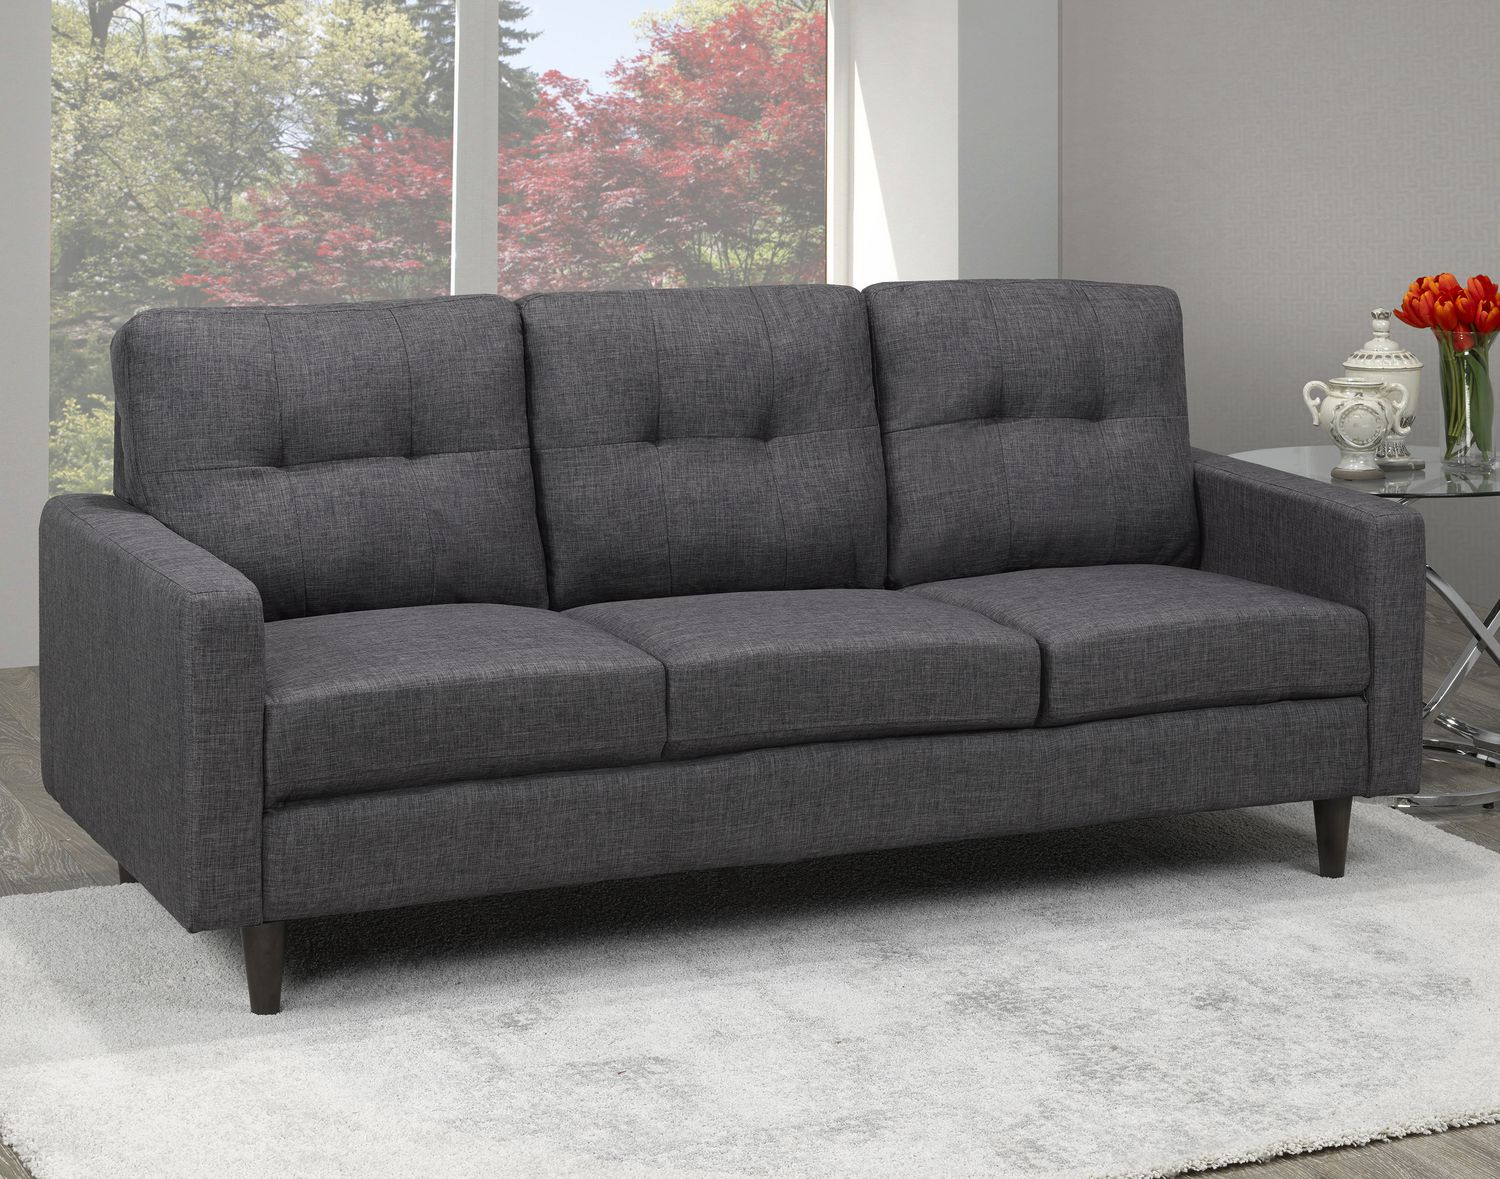 sofa gray color black leather loveseat and recliner brassex 3 seater tufted grey walmart canada